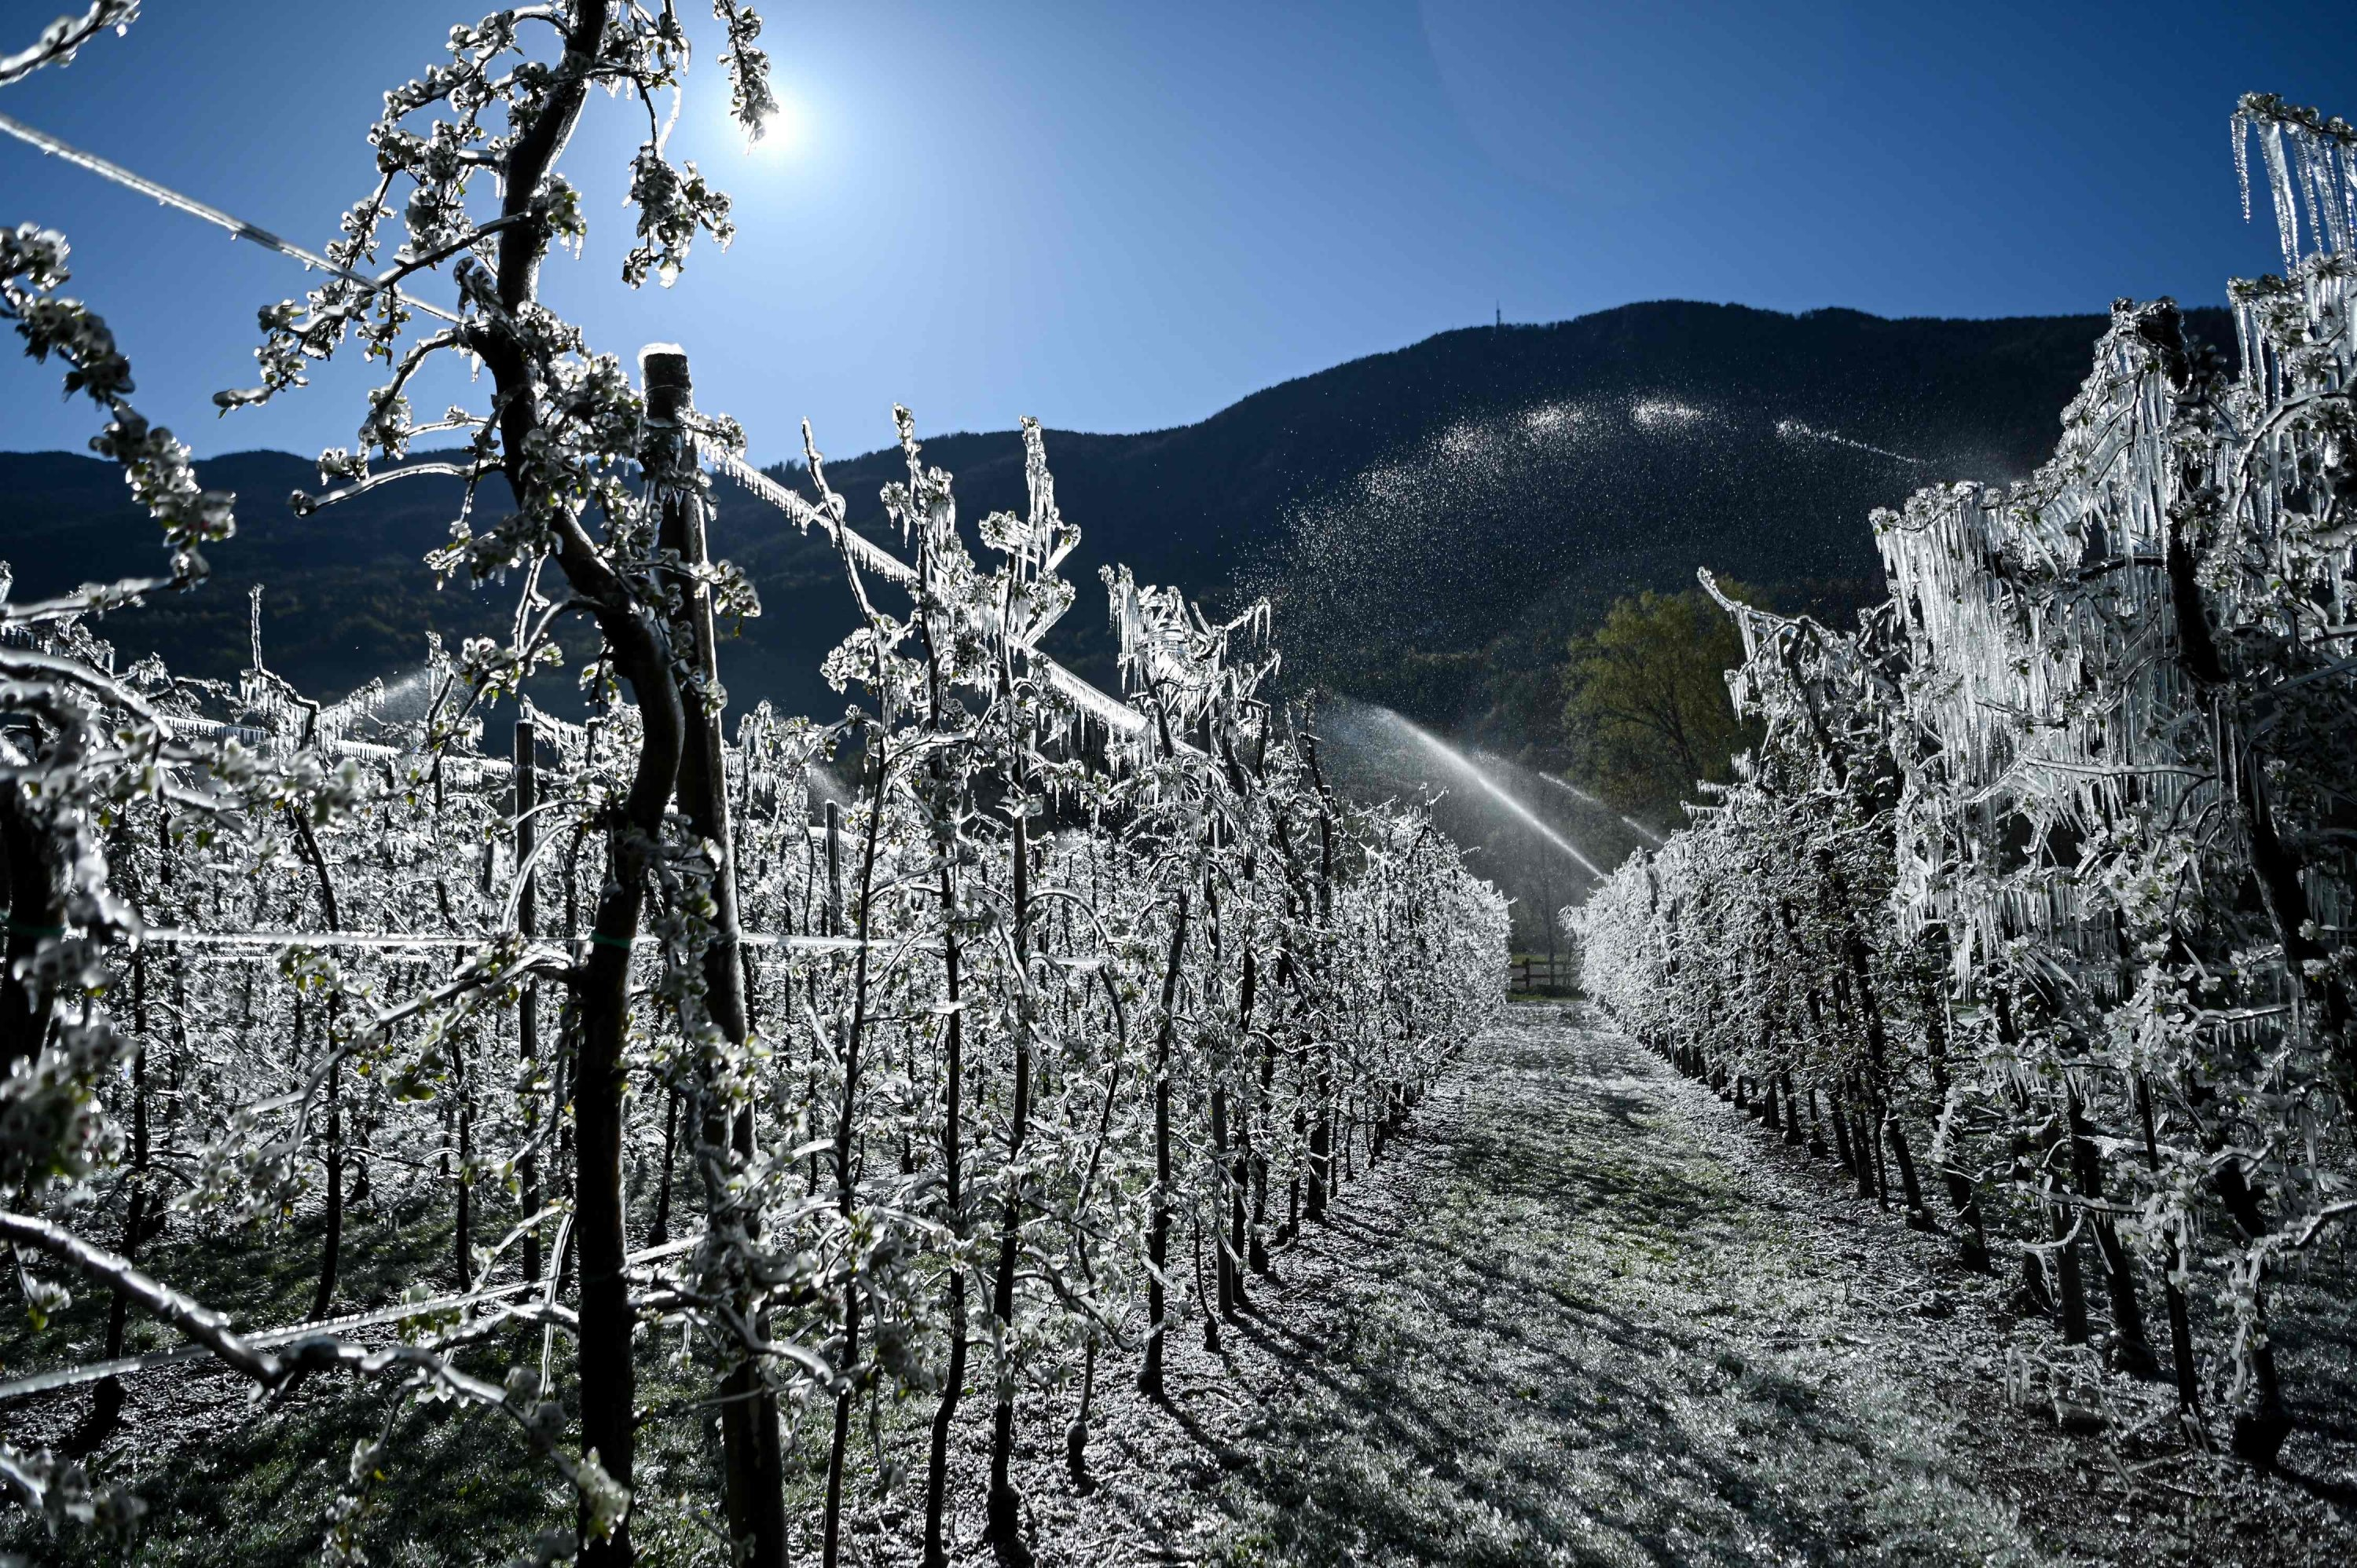 Water is sprayed over apple trees in order to create a layer of ice to protect blossoms from frost at an orchard in La Palazzetta, a village located some 100km from Milan, on April 8, 2021. (AFP Photo)